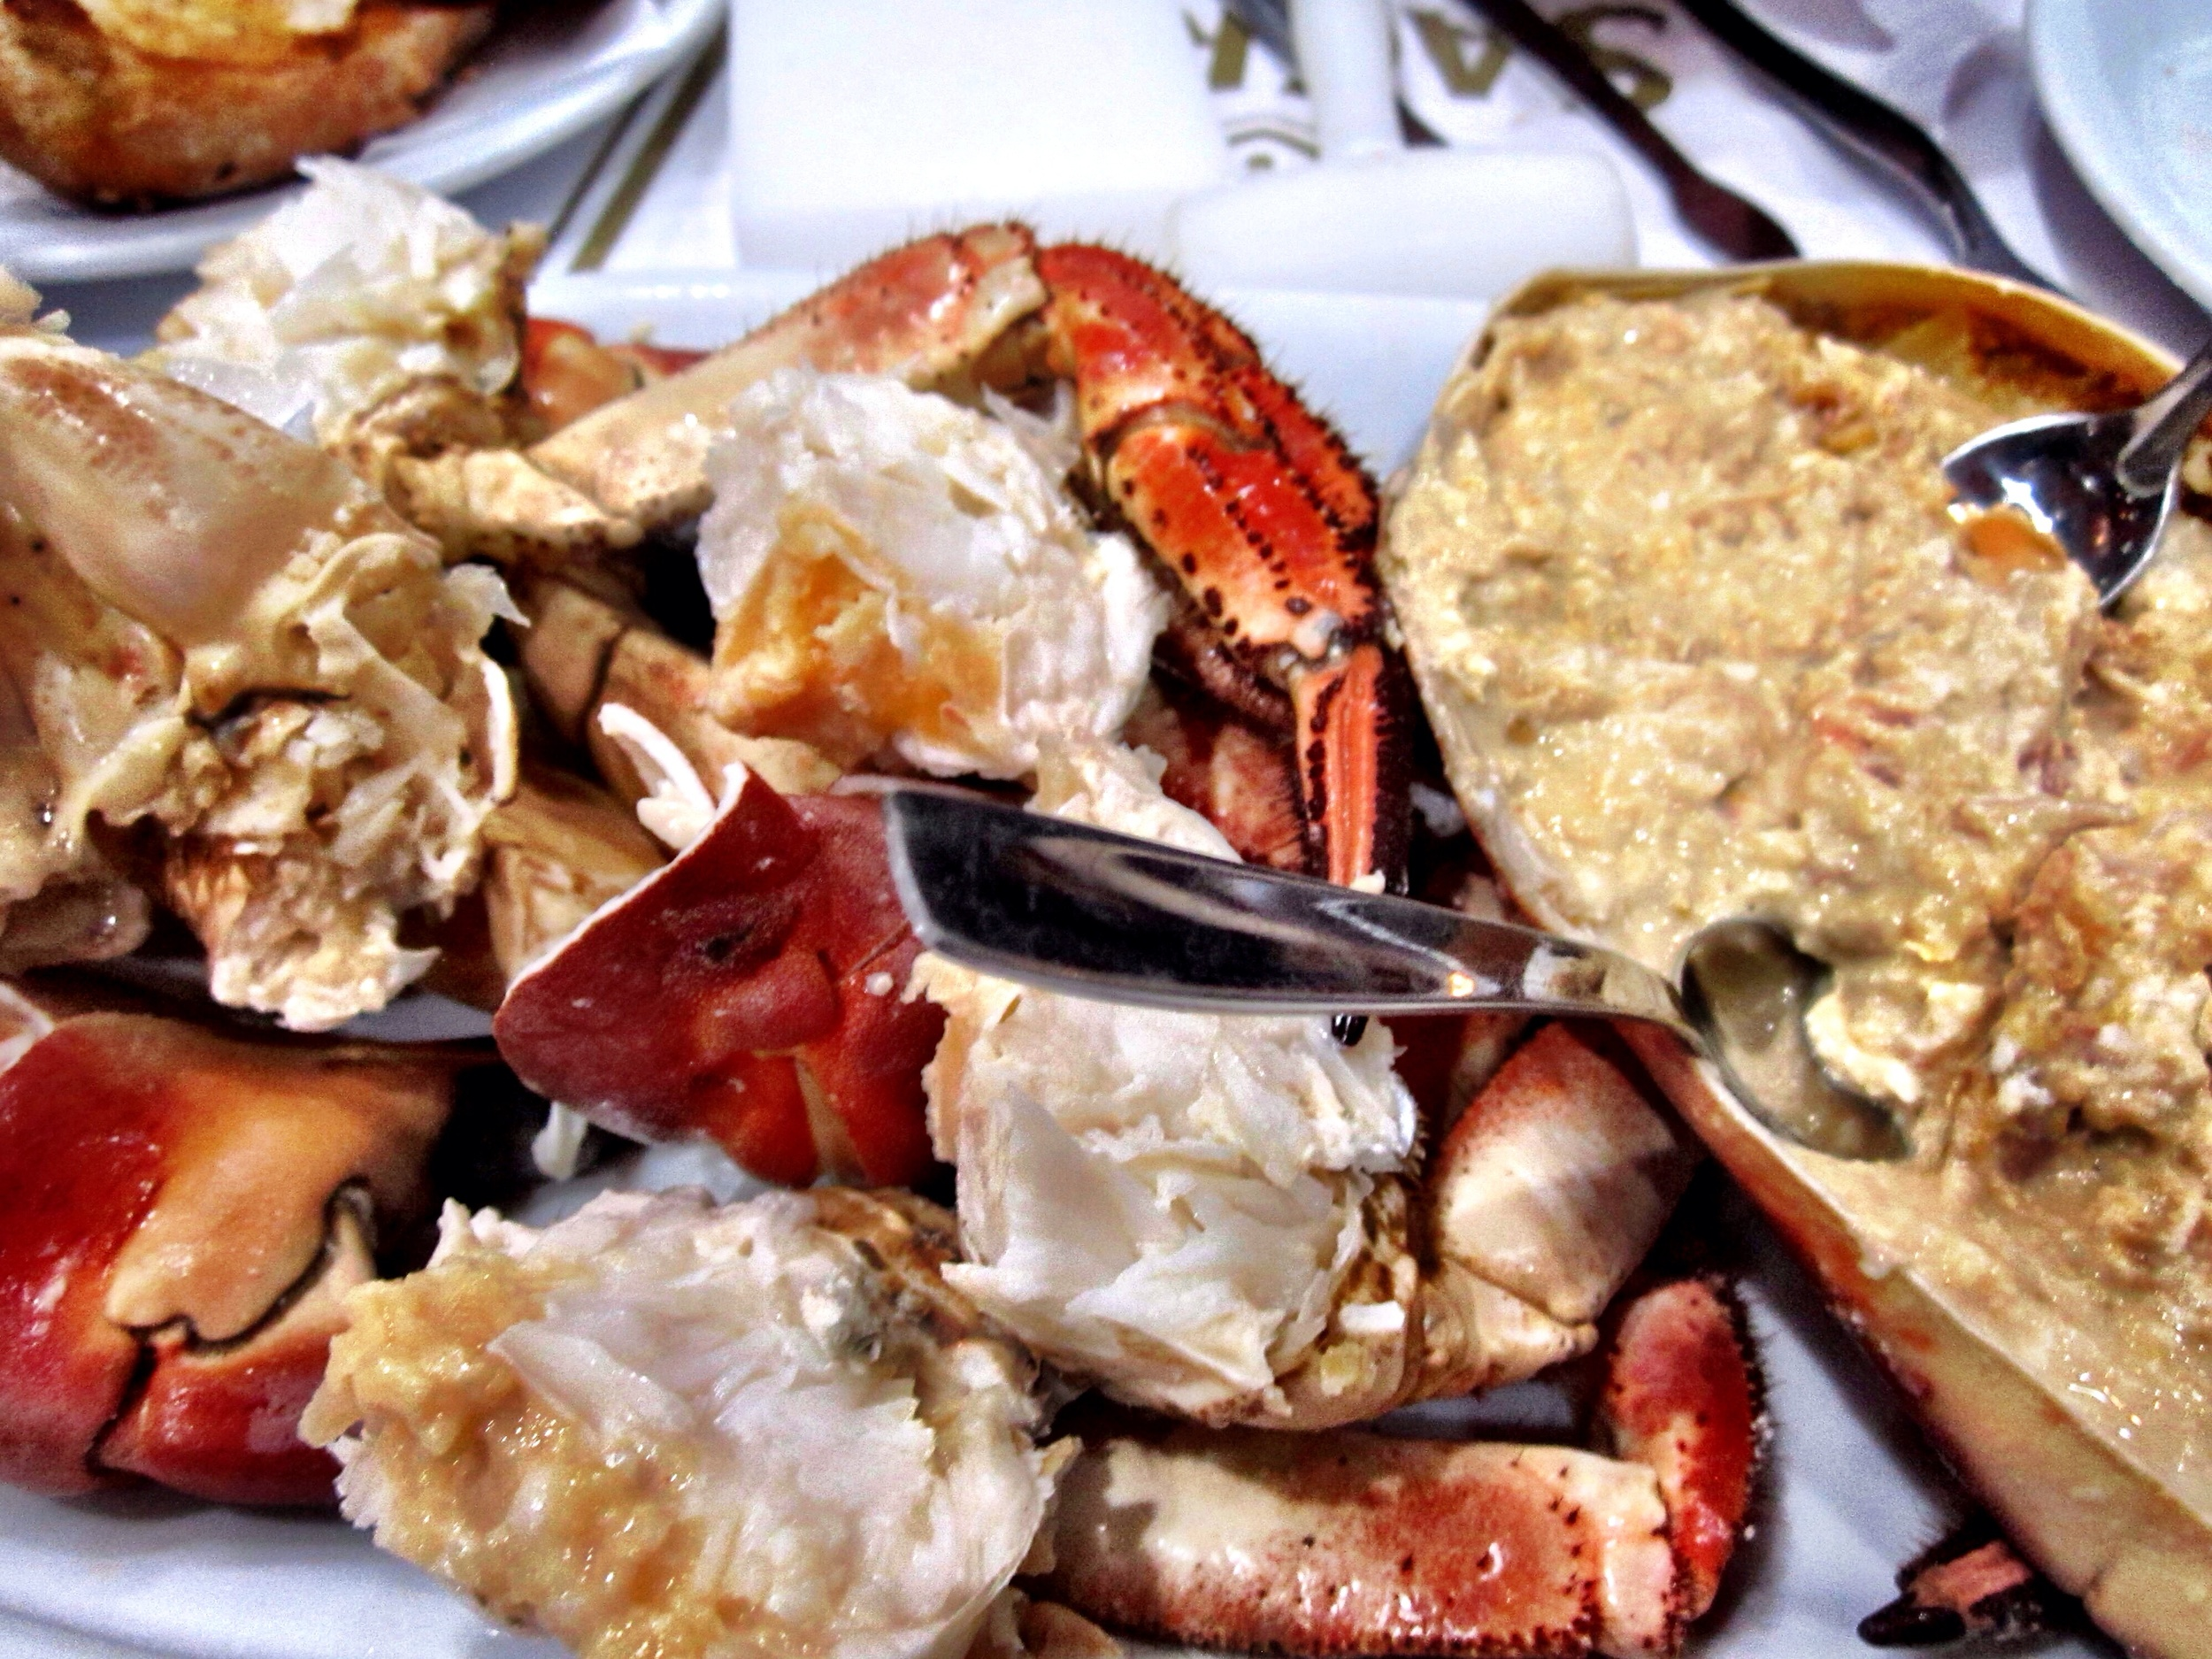 The star of the show at Cervejaria Ramiro in Lisbon - a giant plate of crab